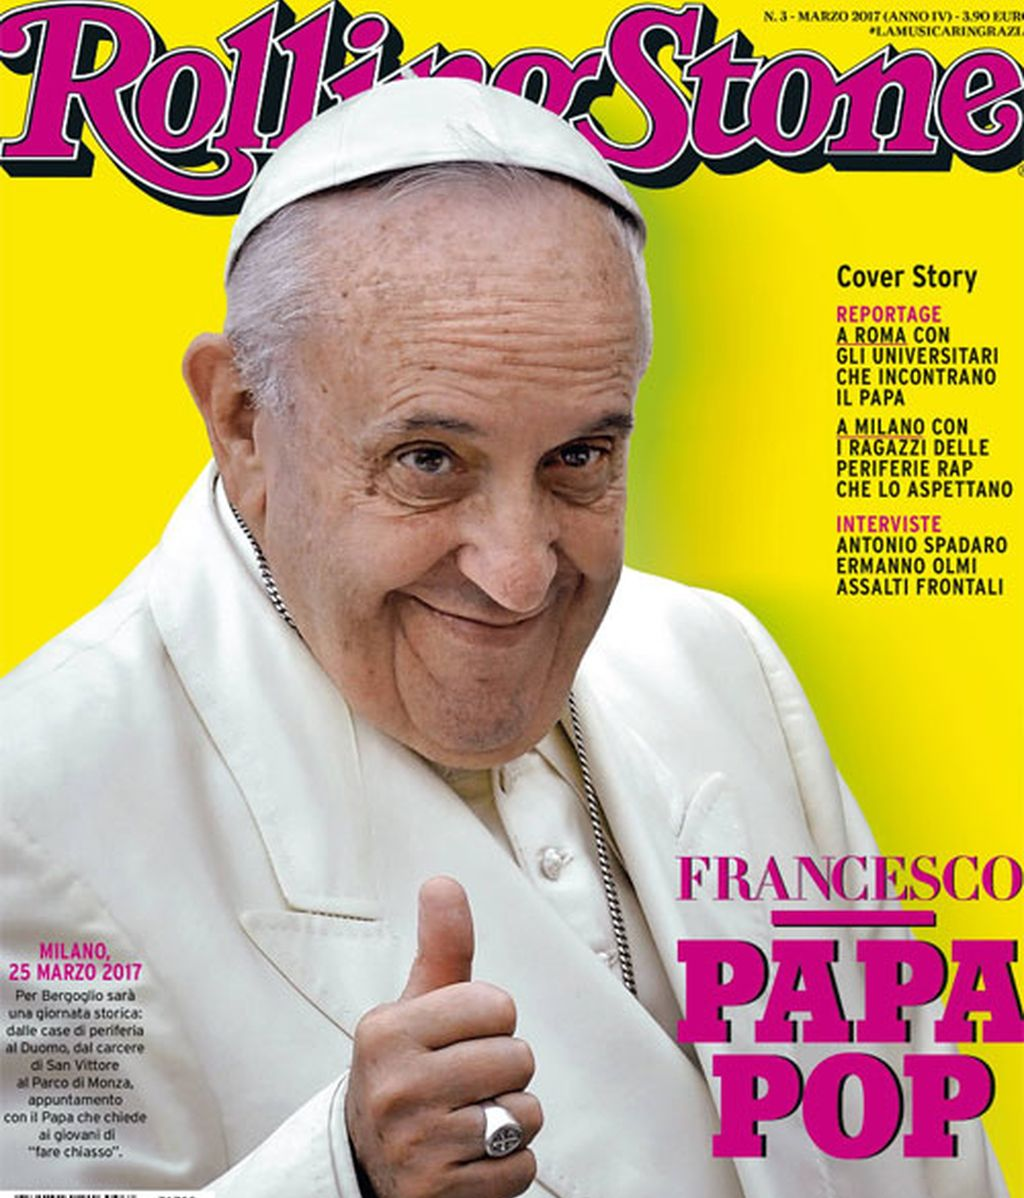 'Francisco, Papa Pop'